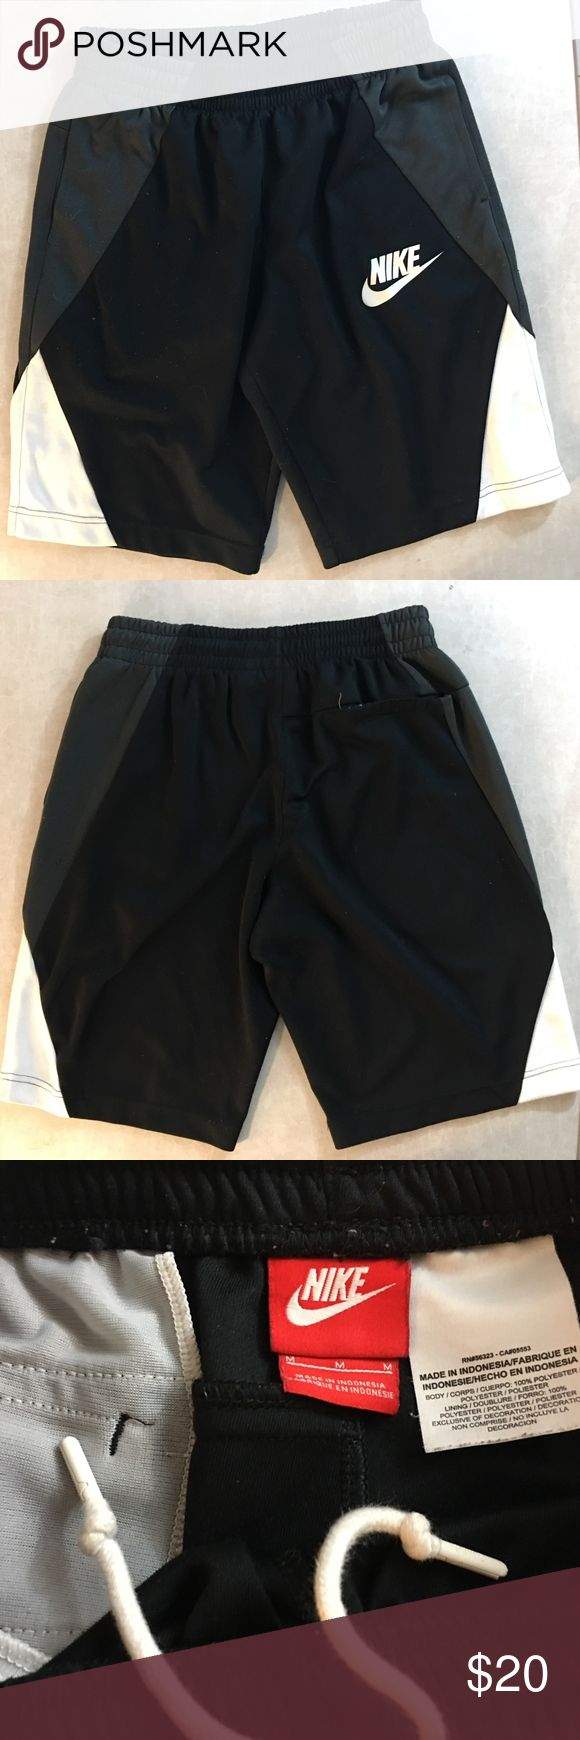 ♻️ Nike Old School Drawstring Cotton Shorts Med Super Old School Nike Cotton Athletic Drawstring Shorts  Size - Medium  Color - Black/Whie  Excellent Condition Nike Shorts Athletic